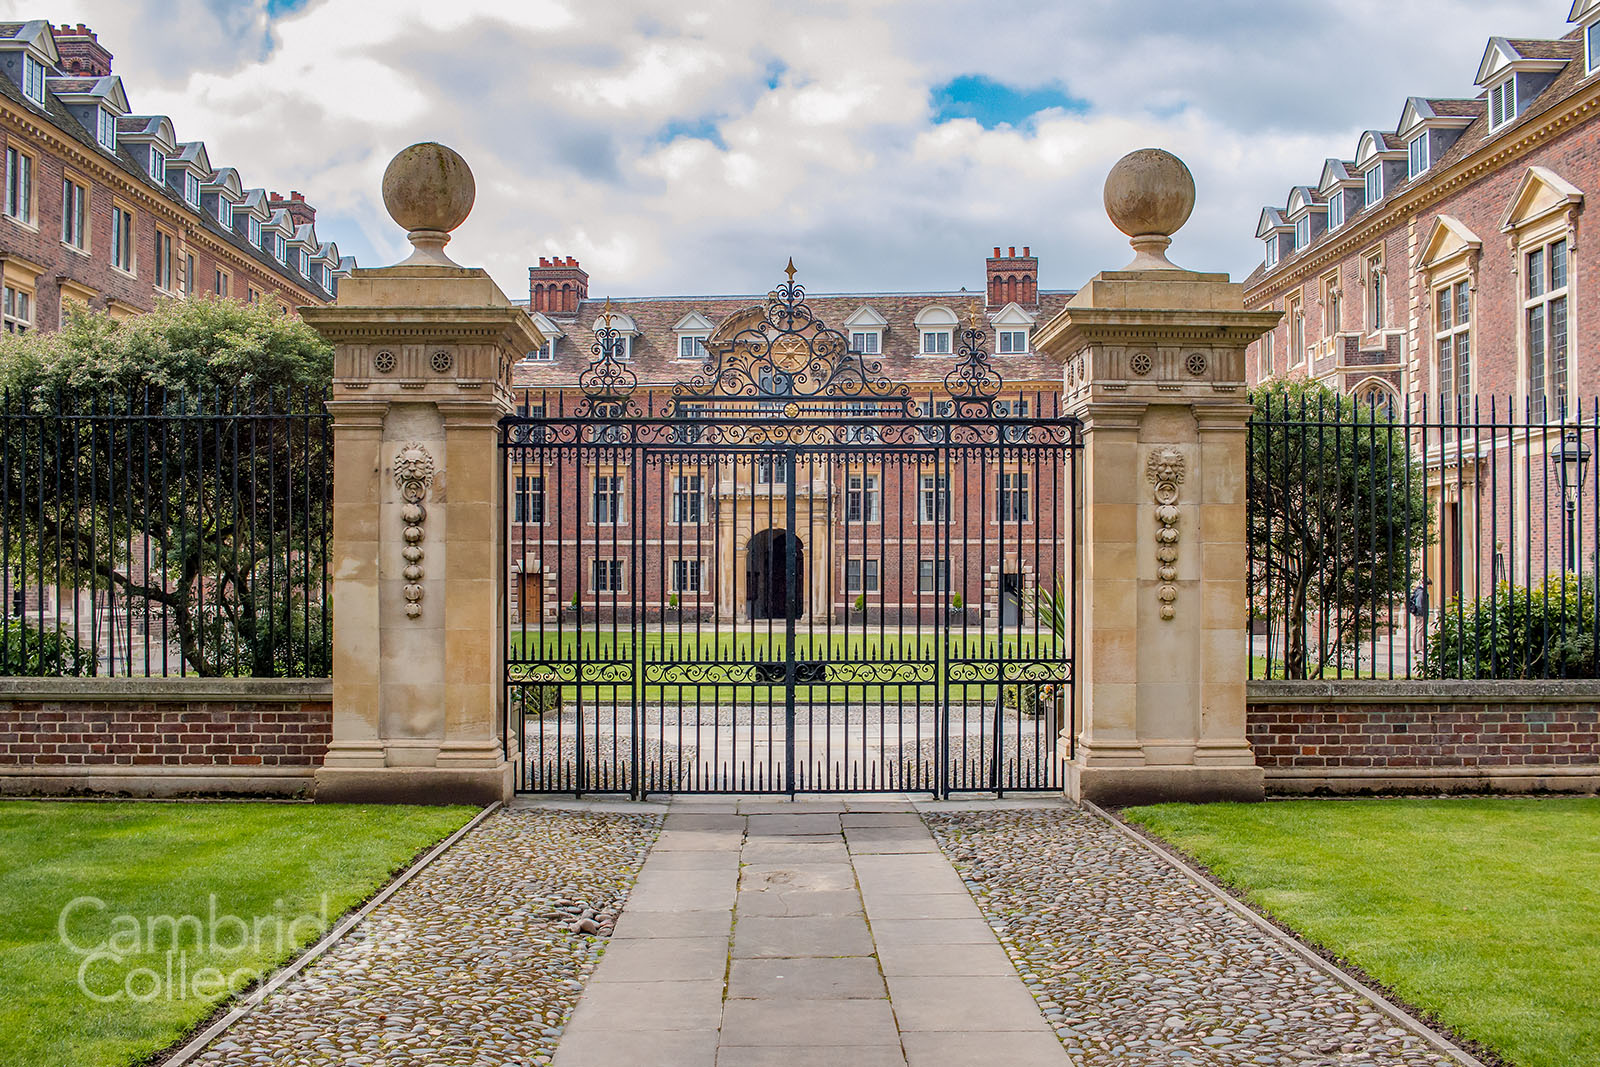 The gates of St Catharine's college